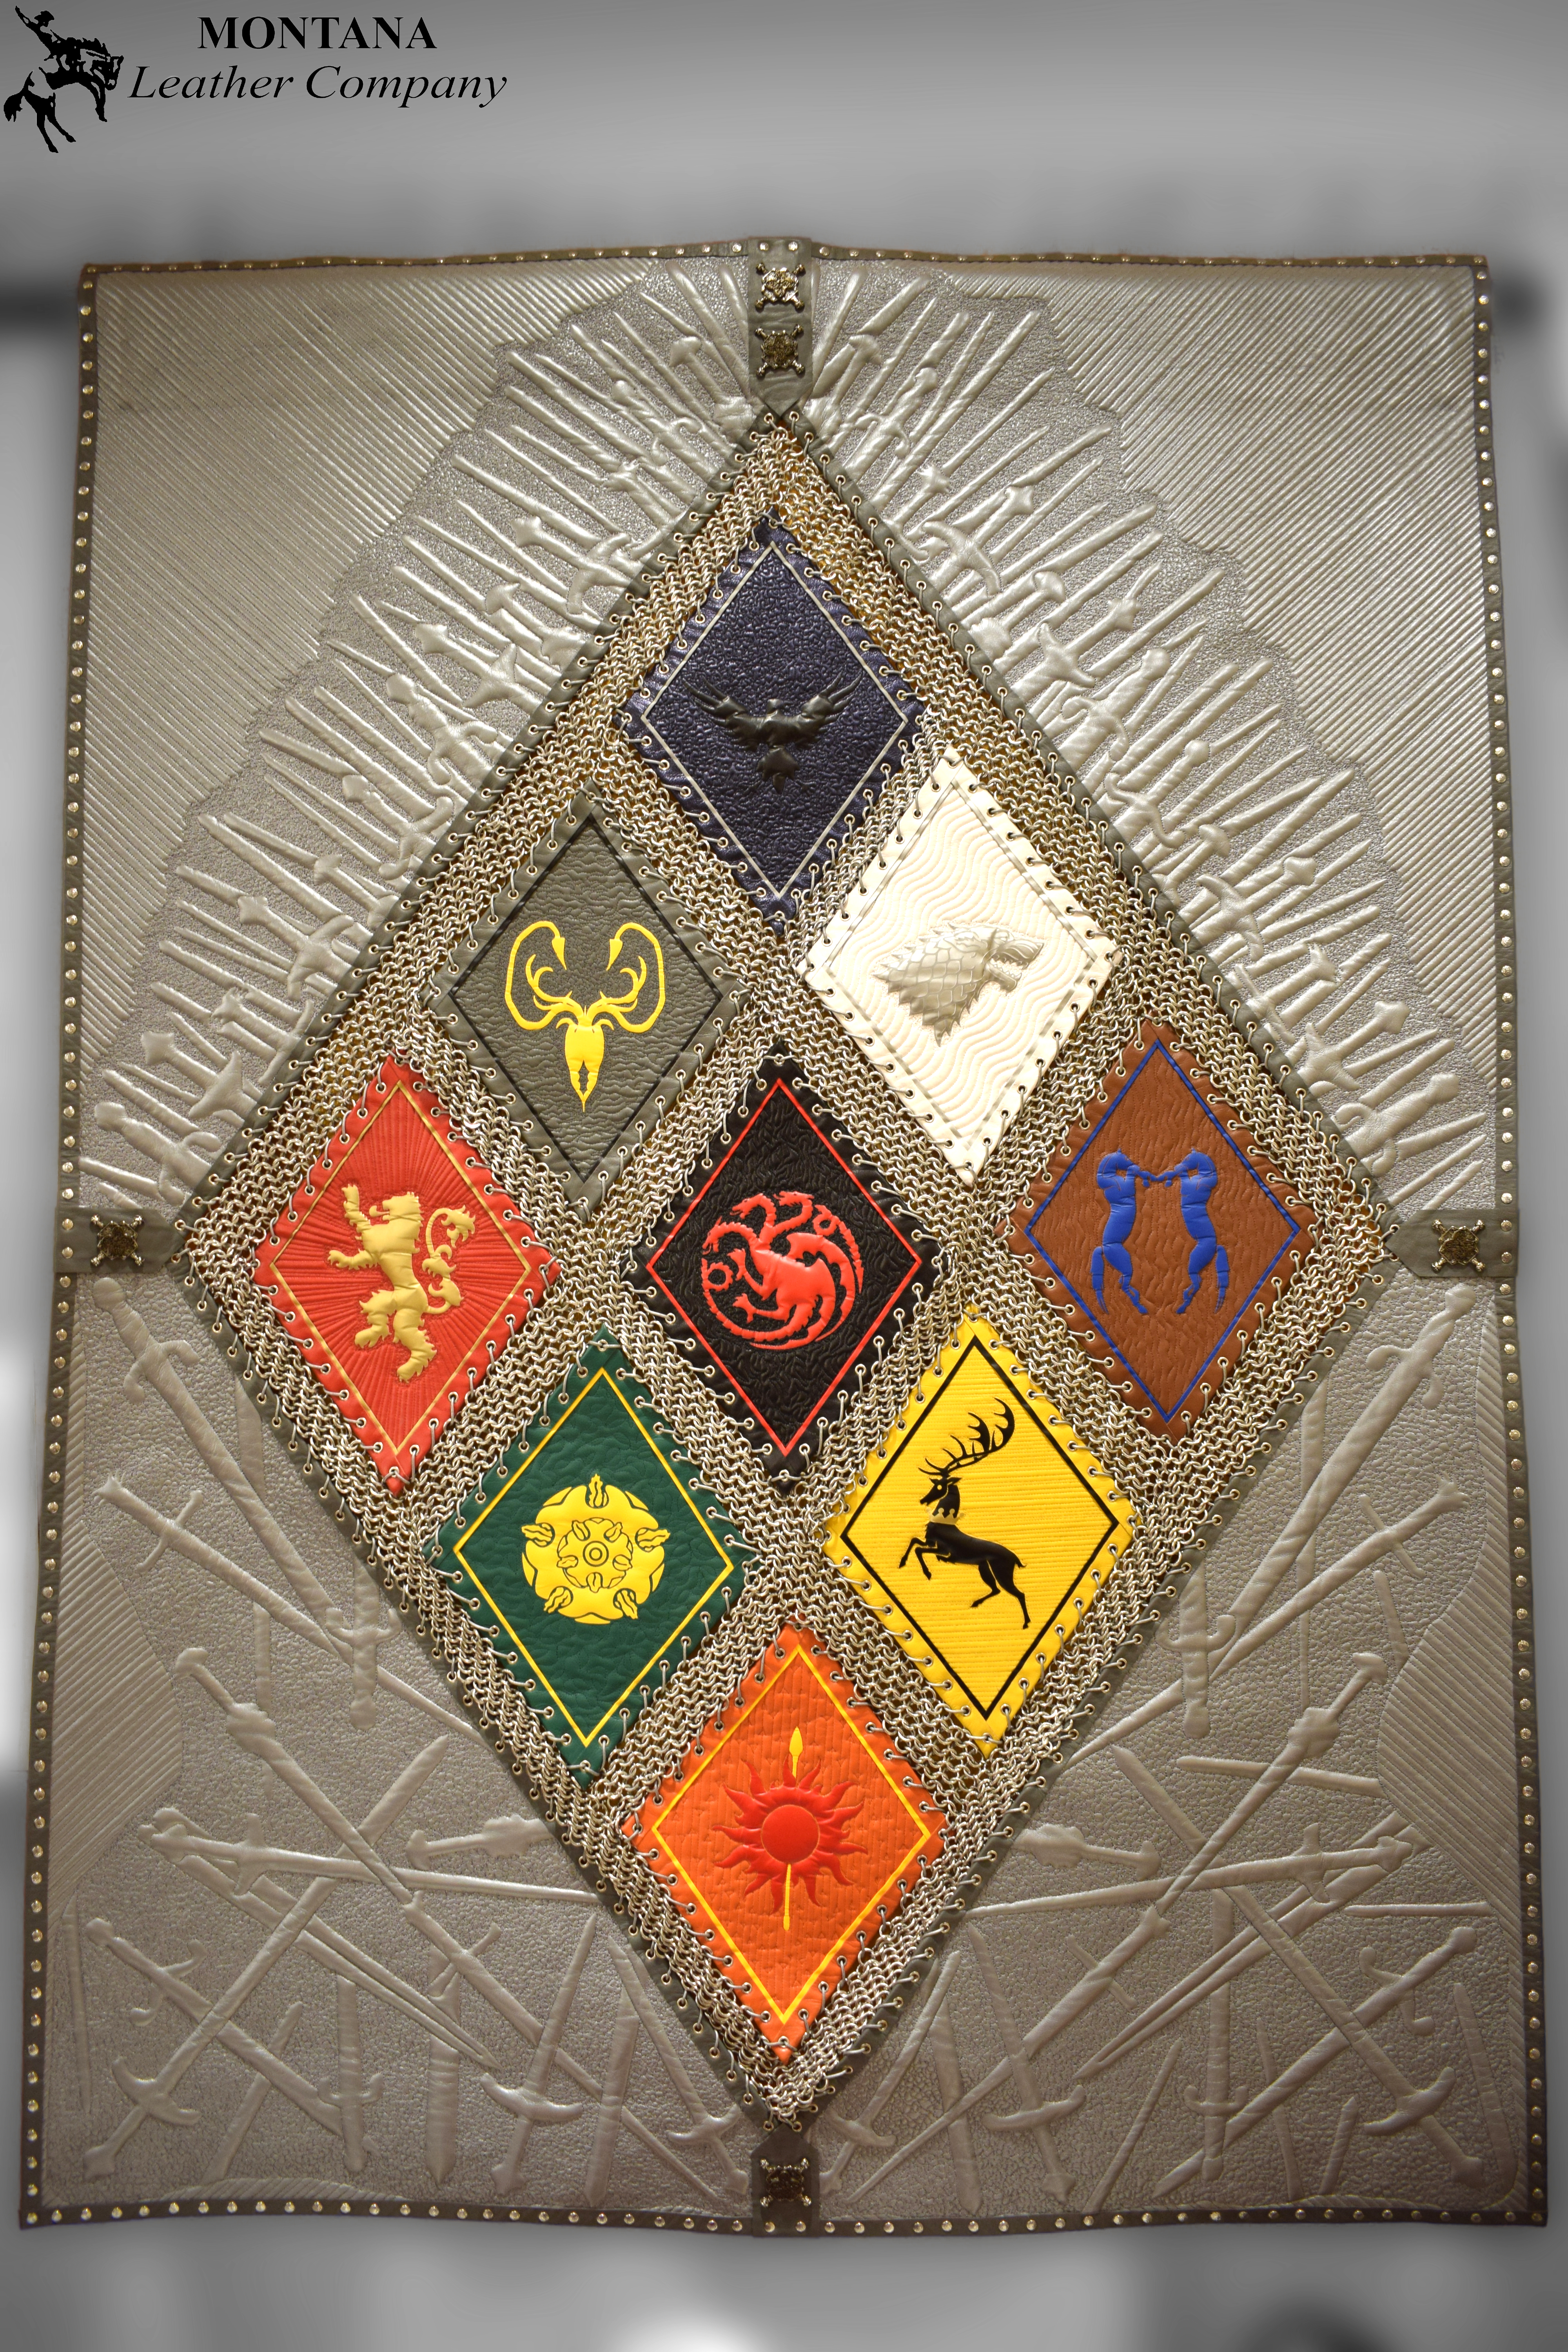 game of thrones sigils, house sigils game of thrones, leather art